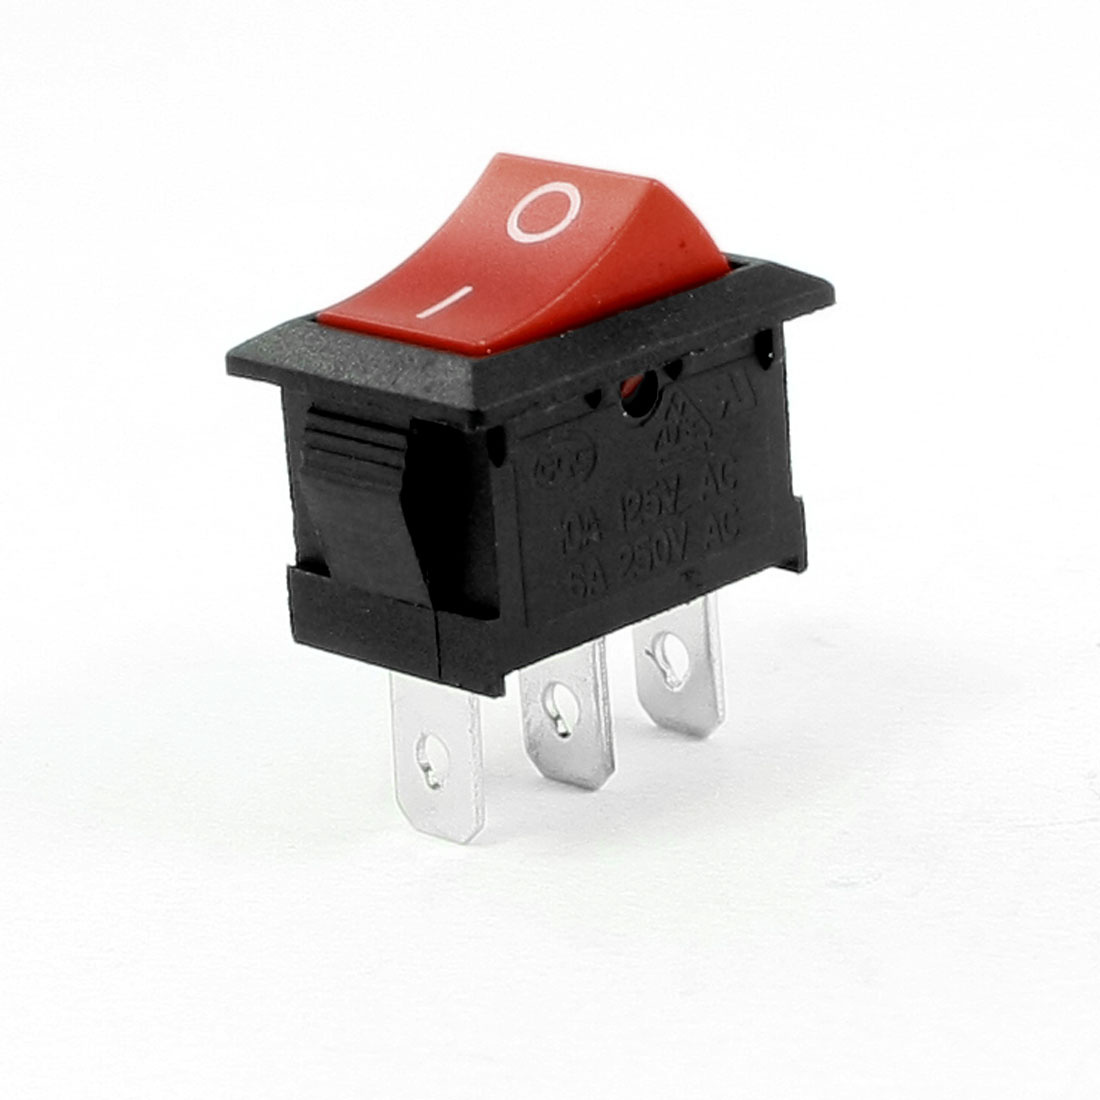 AC 250V 3A SPDT 3 Pins I/O Snap In Boat Rocker Switch